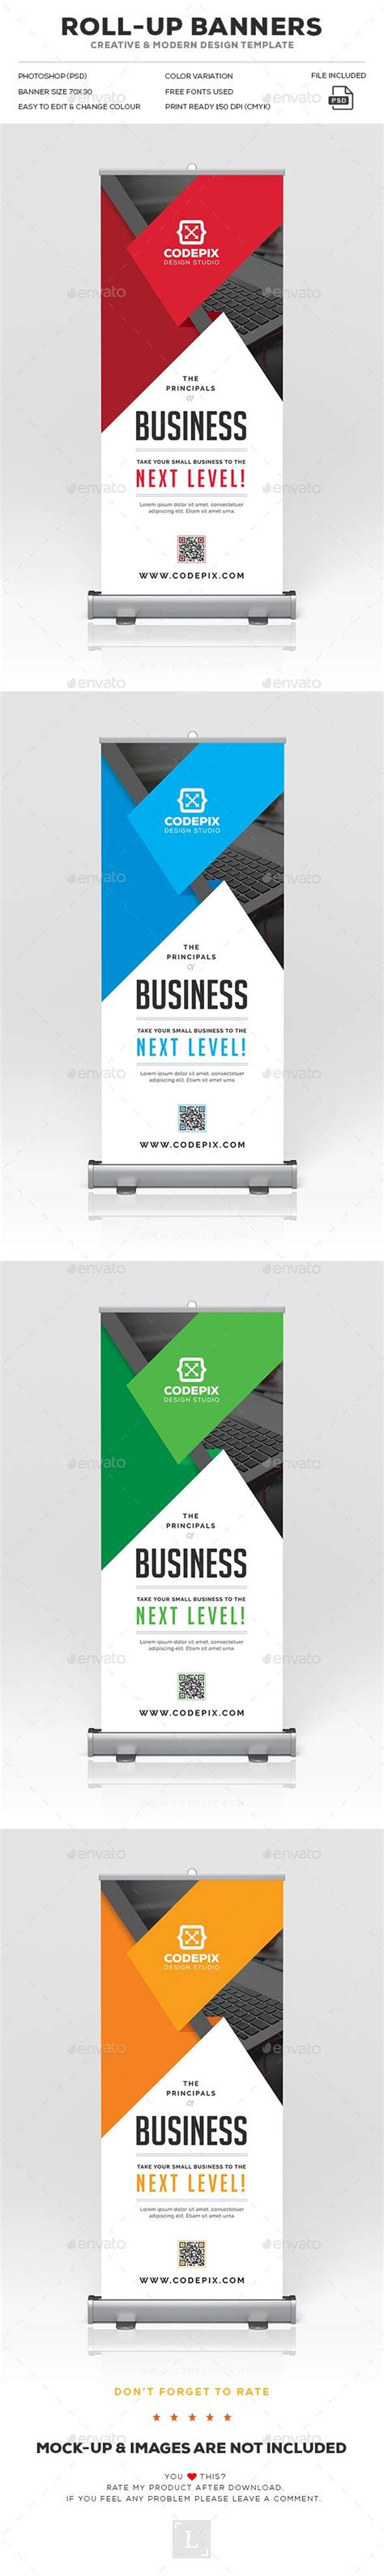 templates for roller banners corporate roll up banner banner template banners and